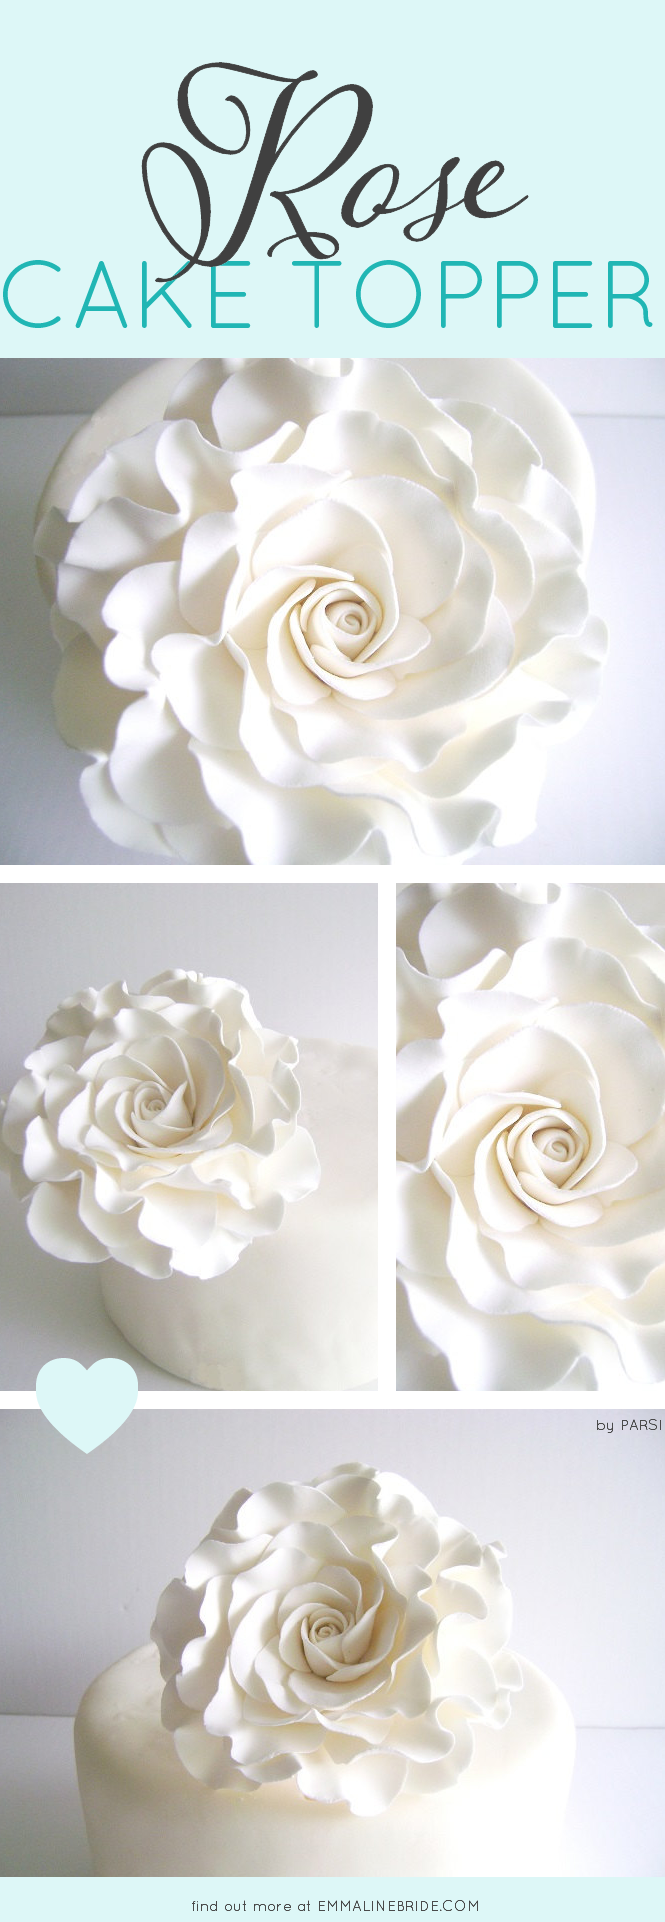 Rose Cake Topper | by Parsi | https://emmalinebride.com/2016-giveaway/rose-cake-topper/